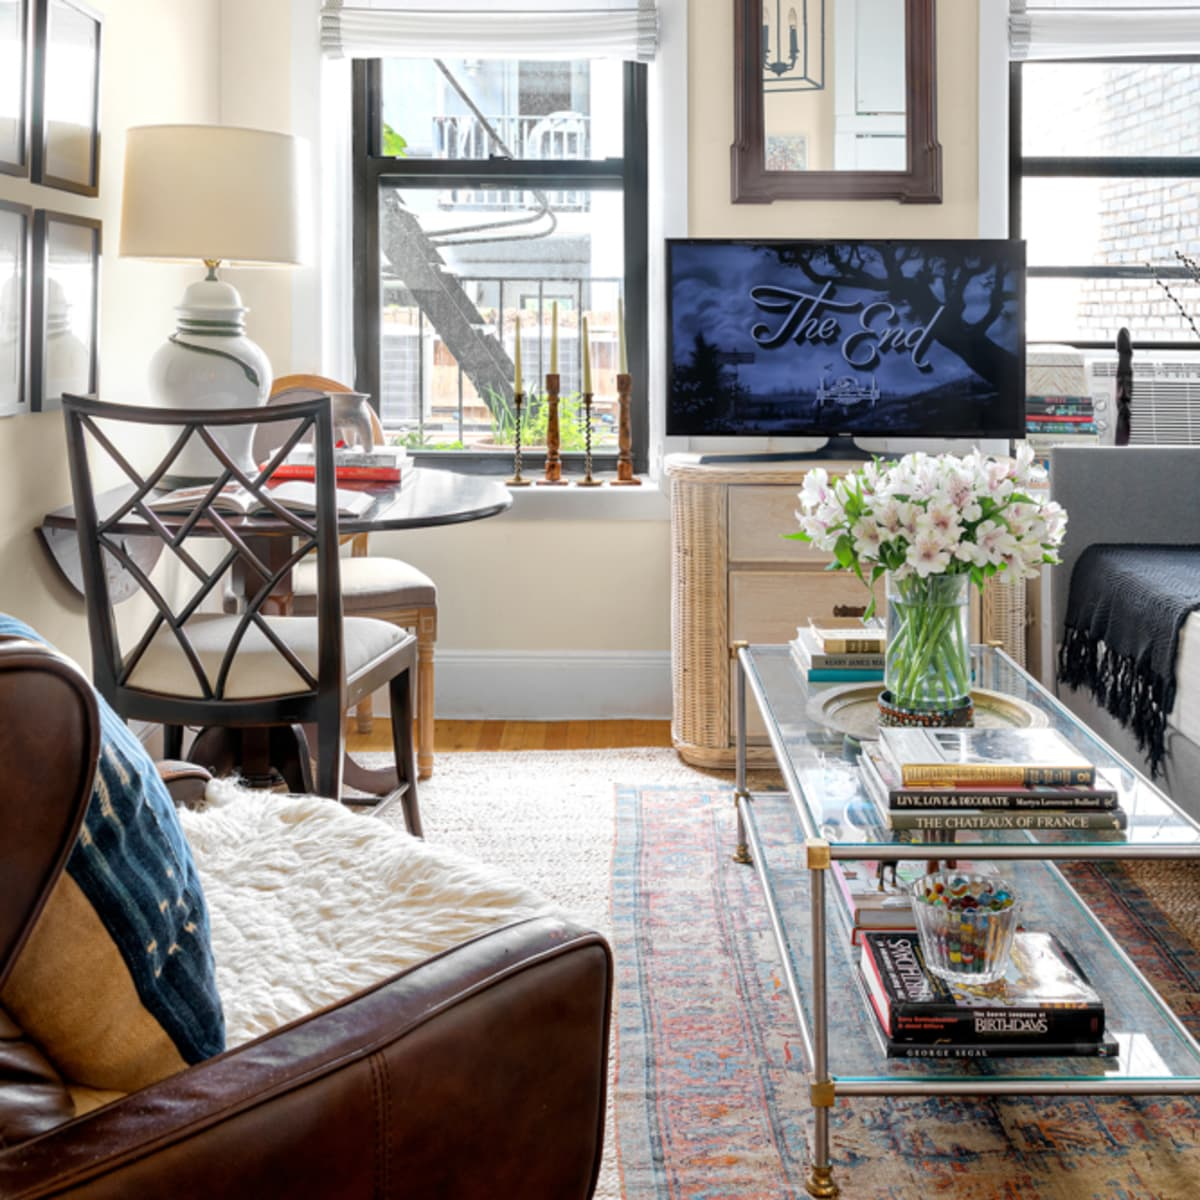 A 380-Square-Foot NYC Rental Is Stuffed with Smart and Stylish Decor Tricks and Solutions